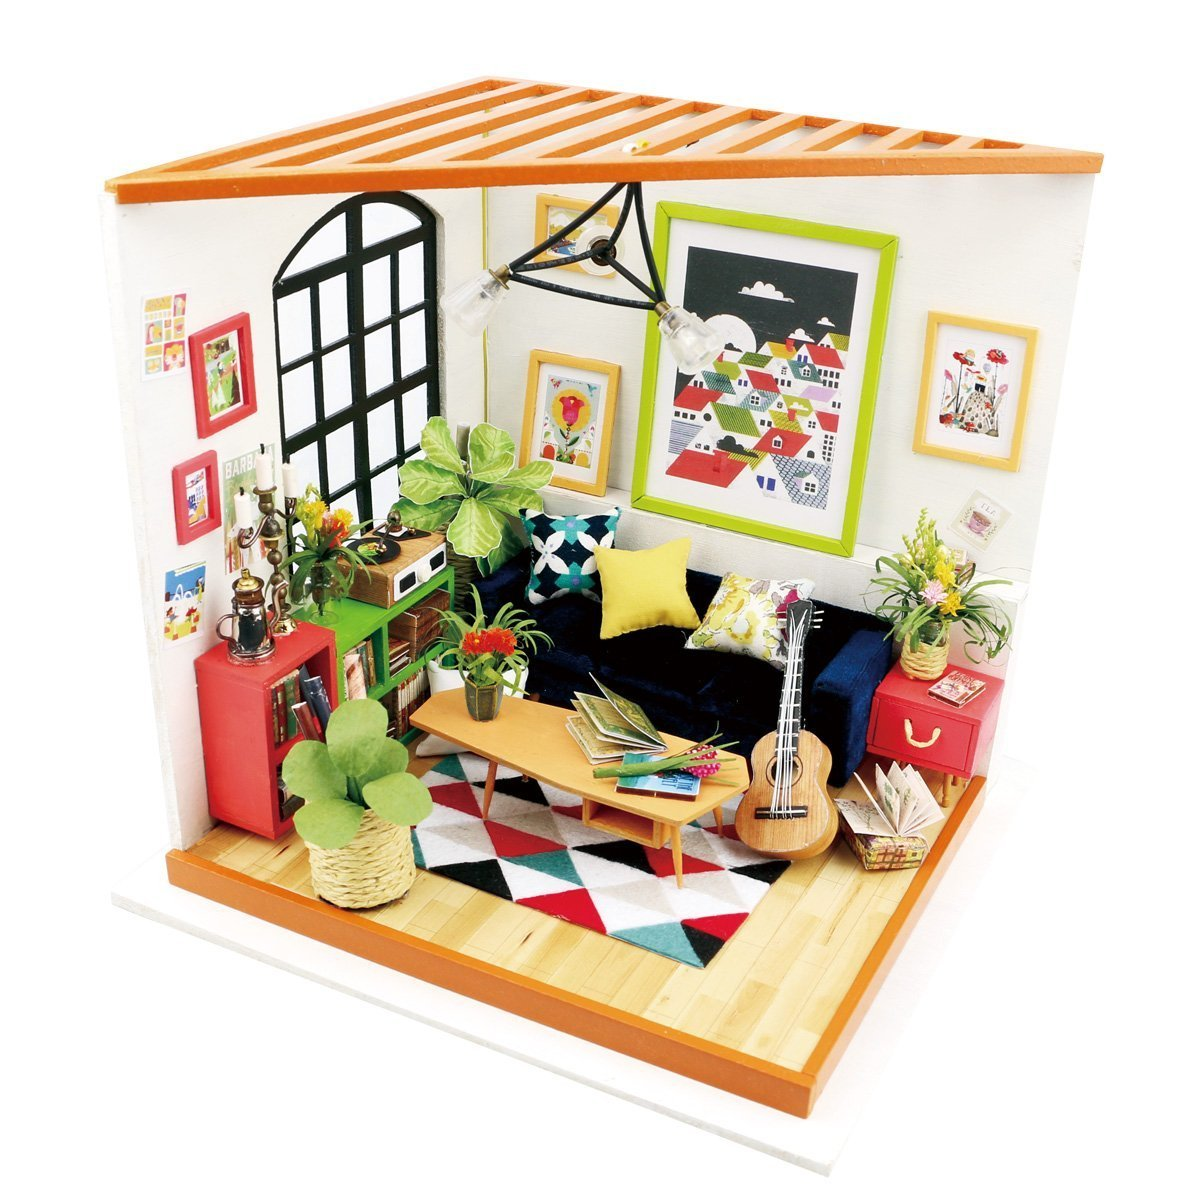 ROBOTIME Dollhouses DIY Kit Miniature with Light Build Toy Wooden Gifts for Adults Kids Teens (Simon's Coffee) BRP671-SC